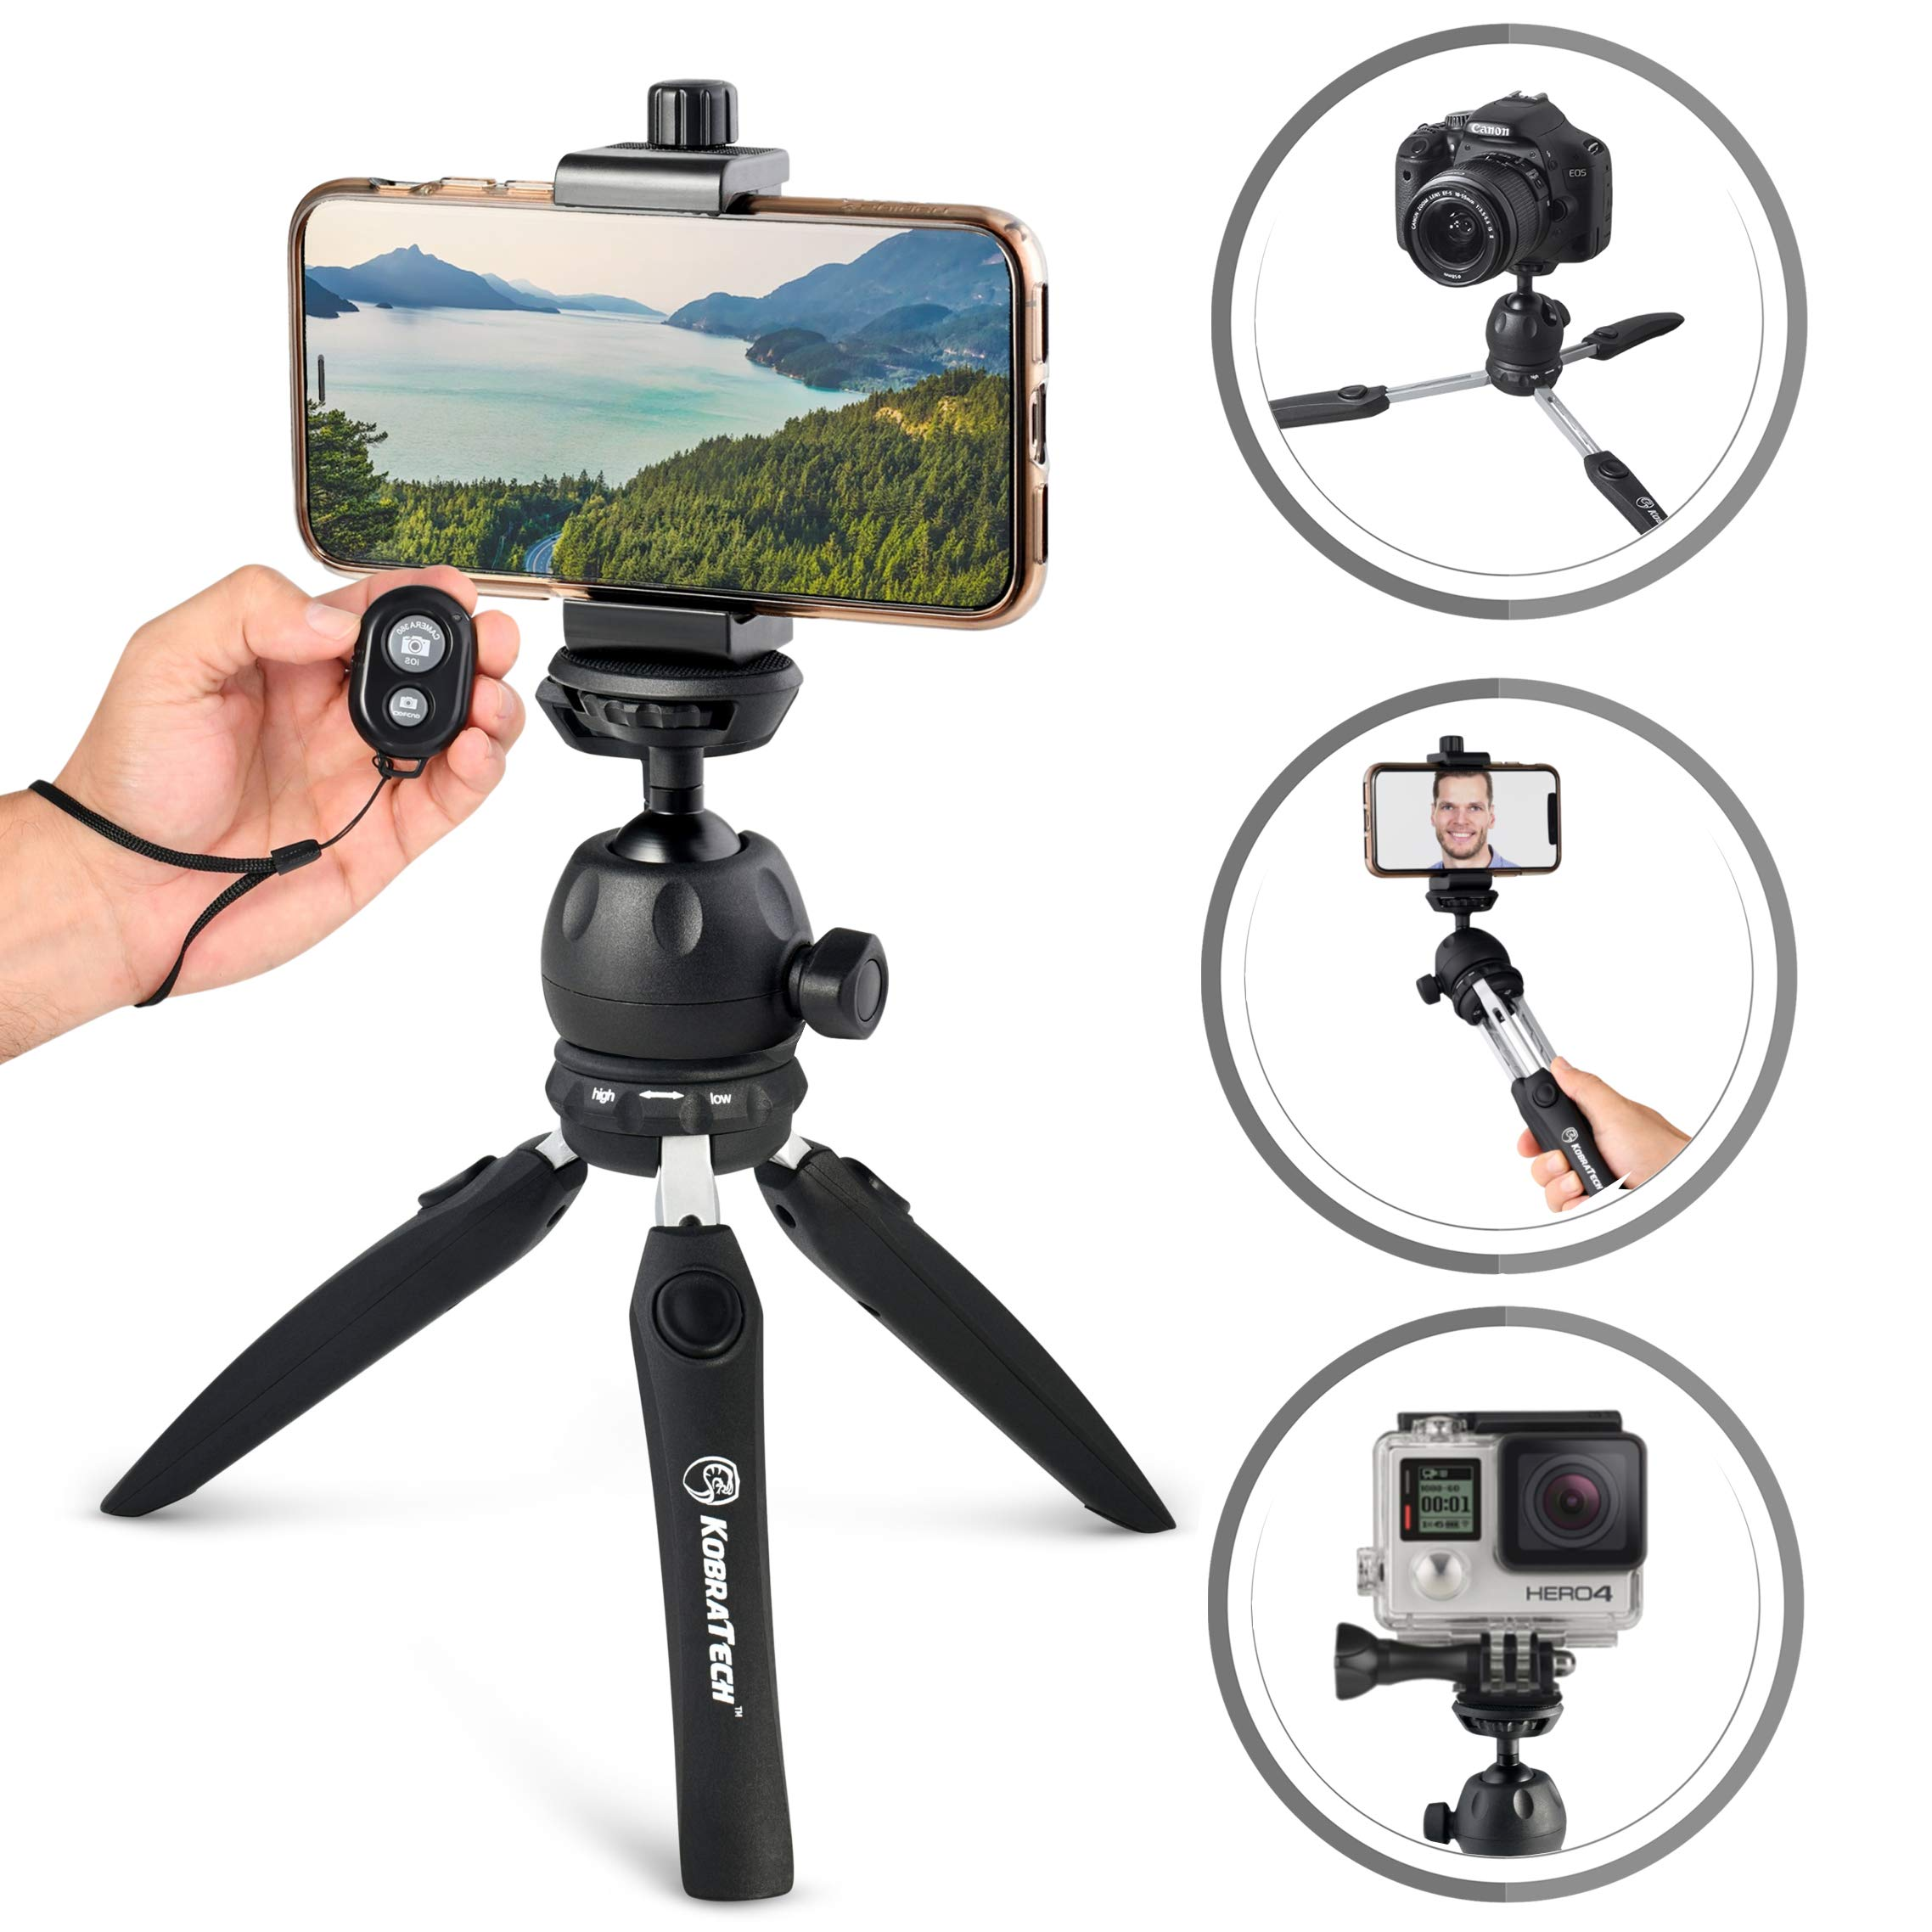 KobraTech Cell Phone Tripod for Phone & Cameras | The VersaPod Mini Tripod - Extendable Legs, Ball Head & Bluetooth Remote by KobraTech